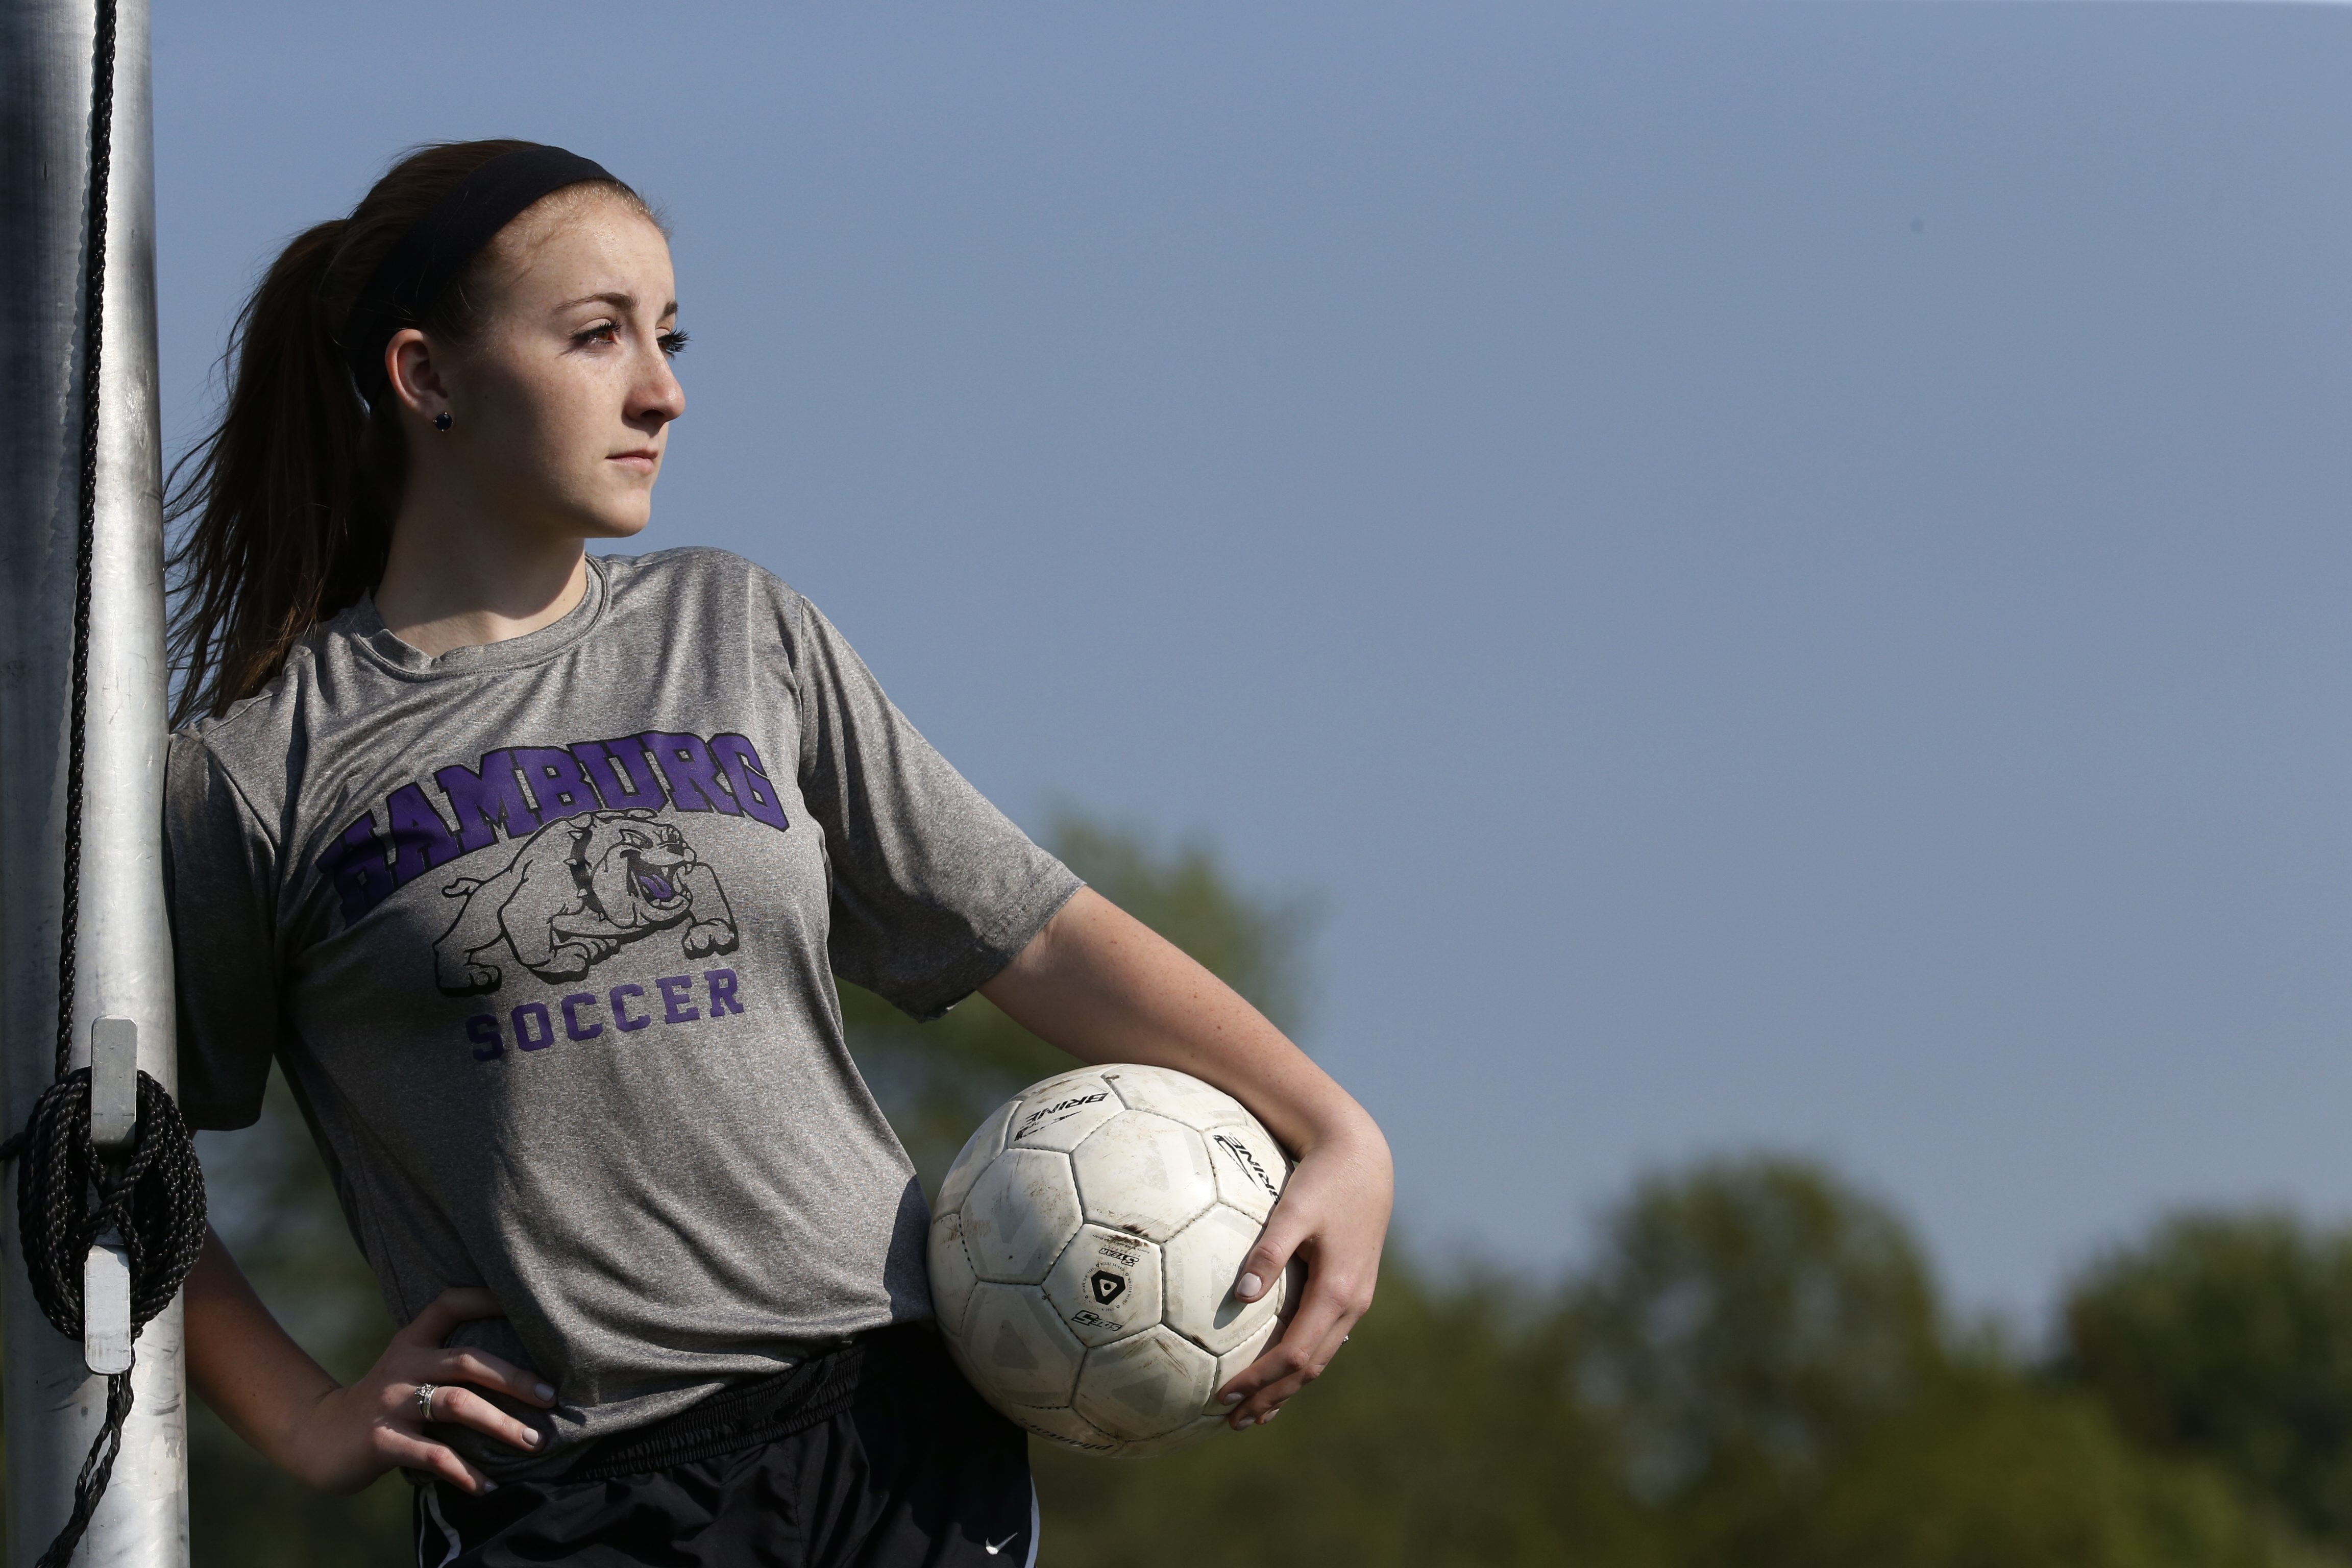 Hamburg soccer goalie Julia Whipple is part of a study on concussions and teenagers conducted by University at Buffalo researchers at UBMD Orthopaedics and Sports Medicine. (Harry Scull Jr./Buffalo News)